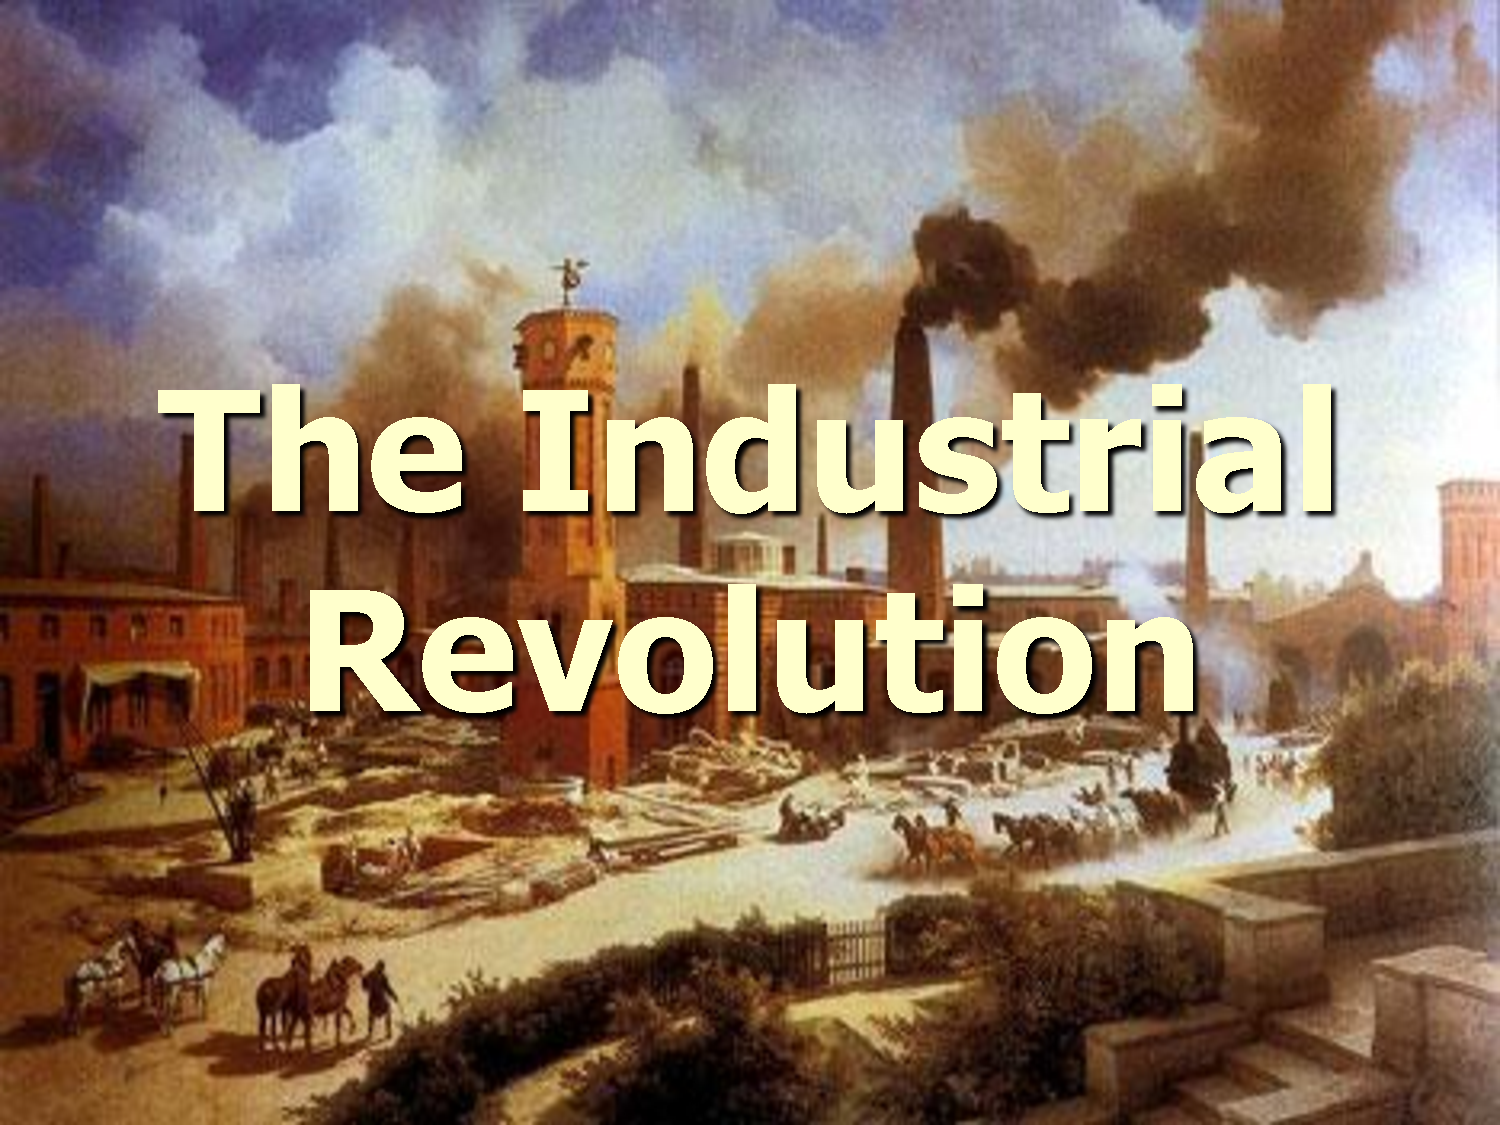 Interesting Industrial Revolution Timeline From 1712 To 1942 With